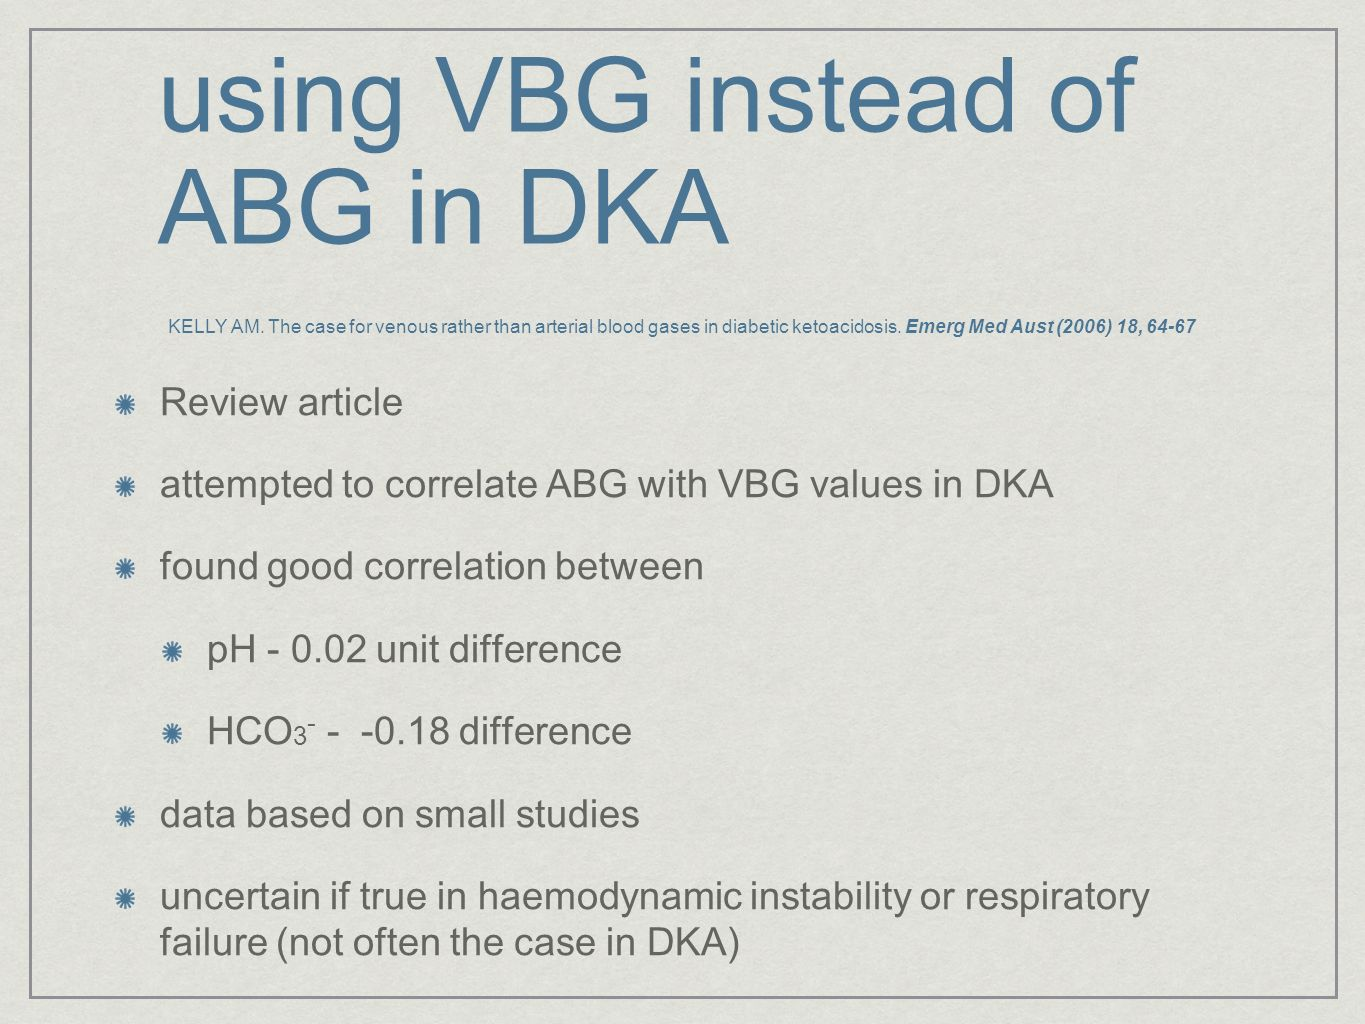 using VBG instead of ABG in DKA